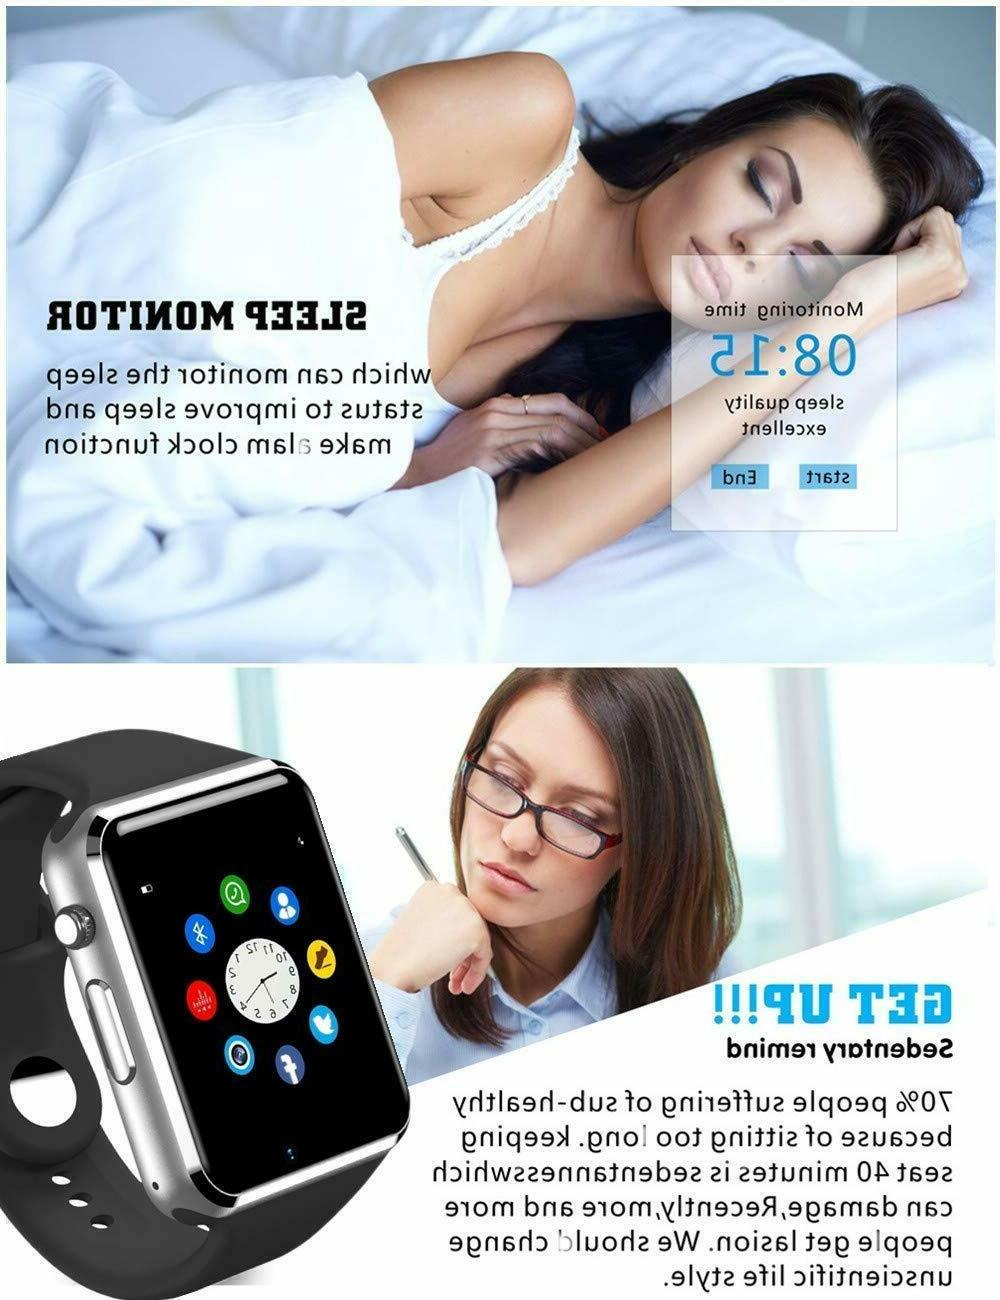 G Bluetooth Watch Phone iphone Android LG